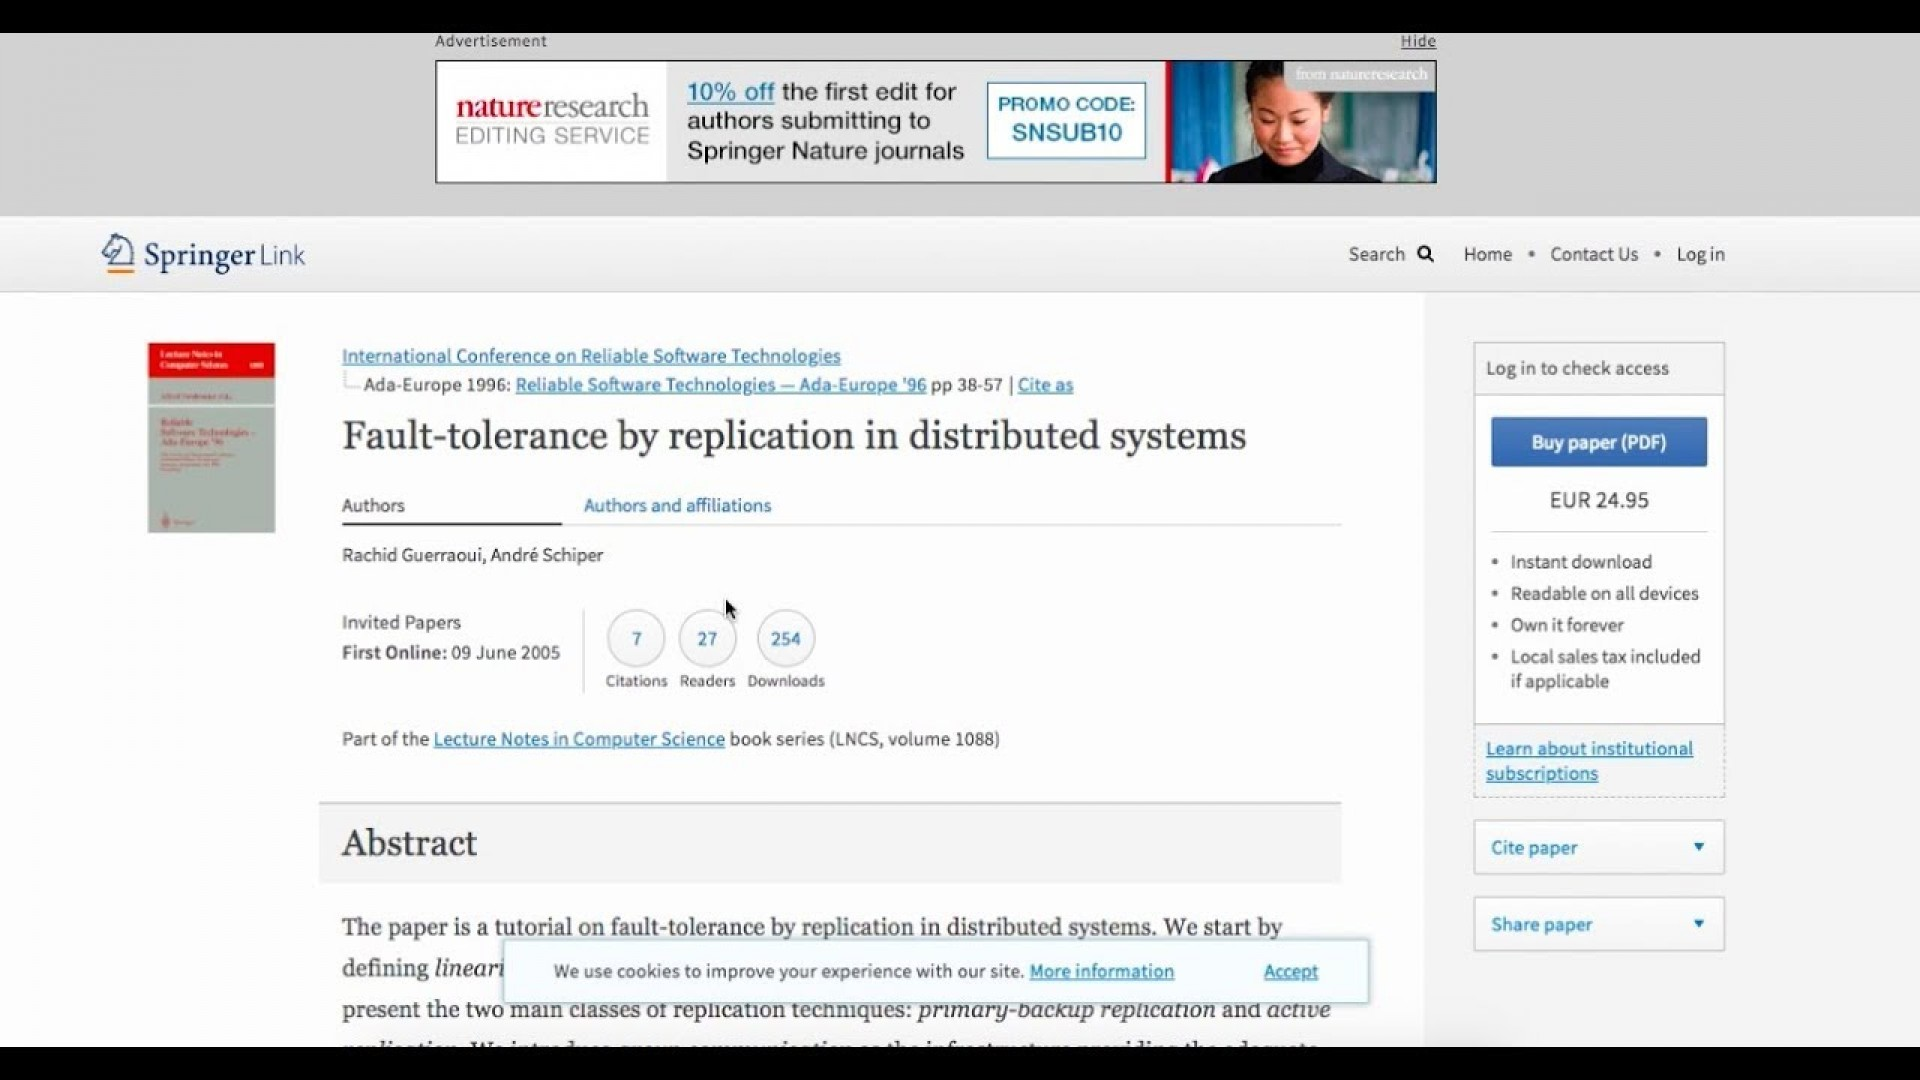 004 Research Paper Maxresdefault Best Site To Download Papers Unbelievable Free How From Researchgate Springer Sciencedirect 1920